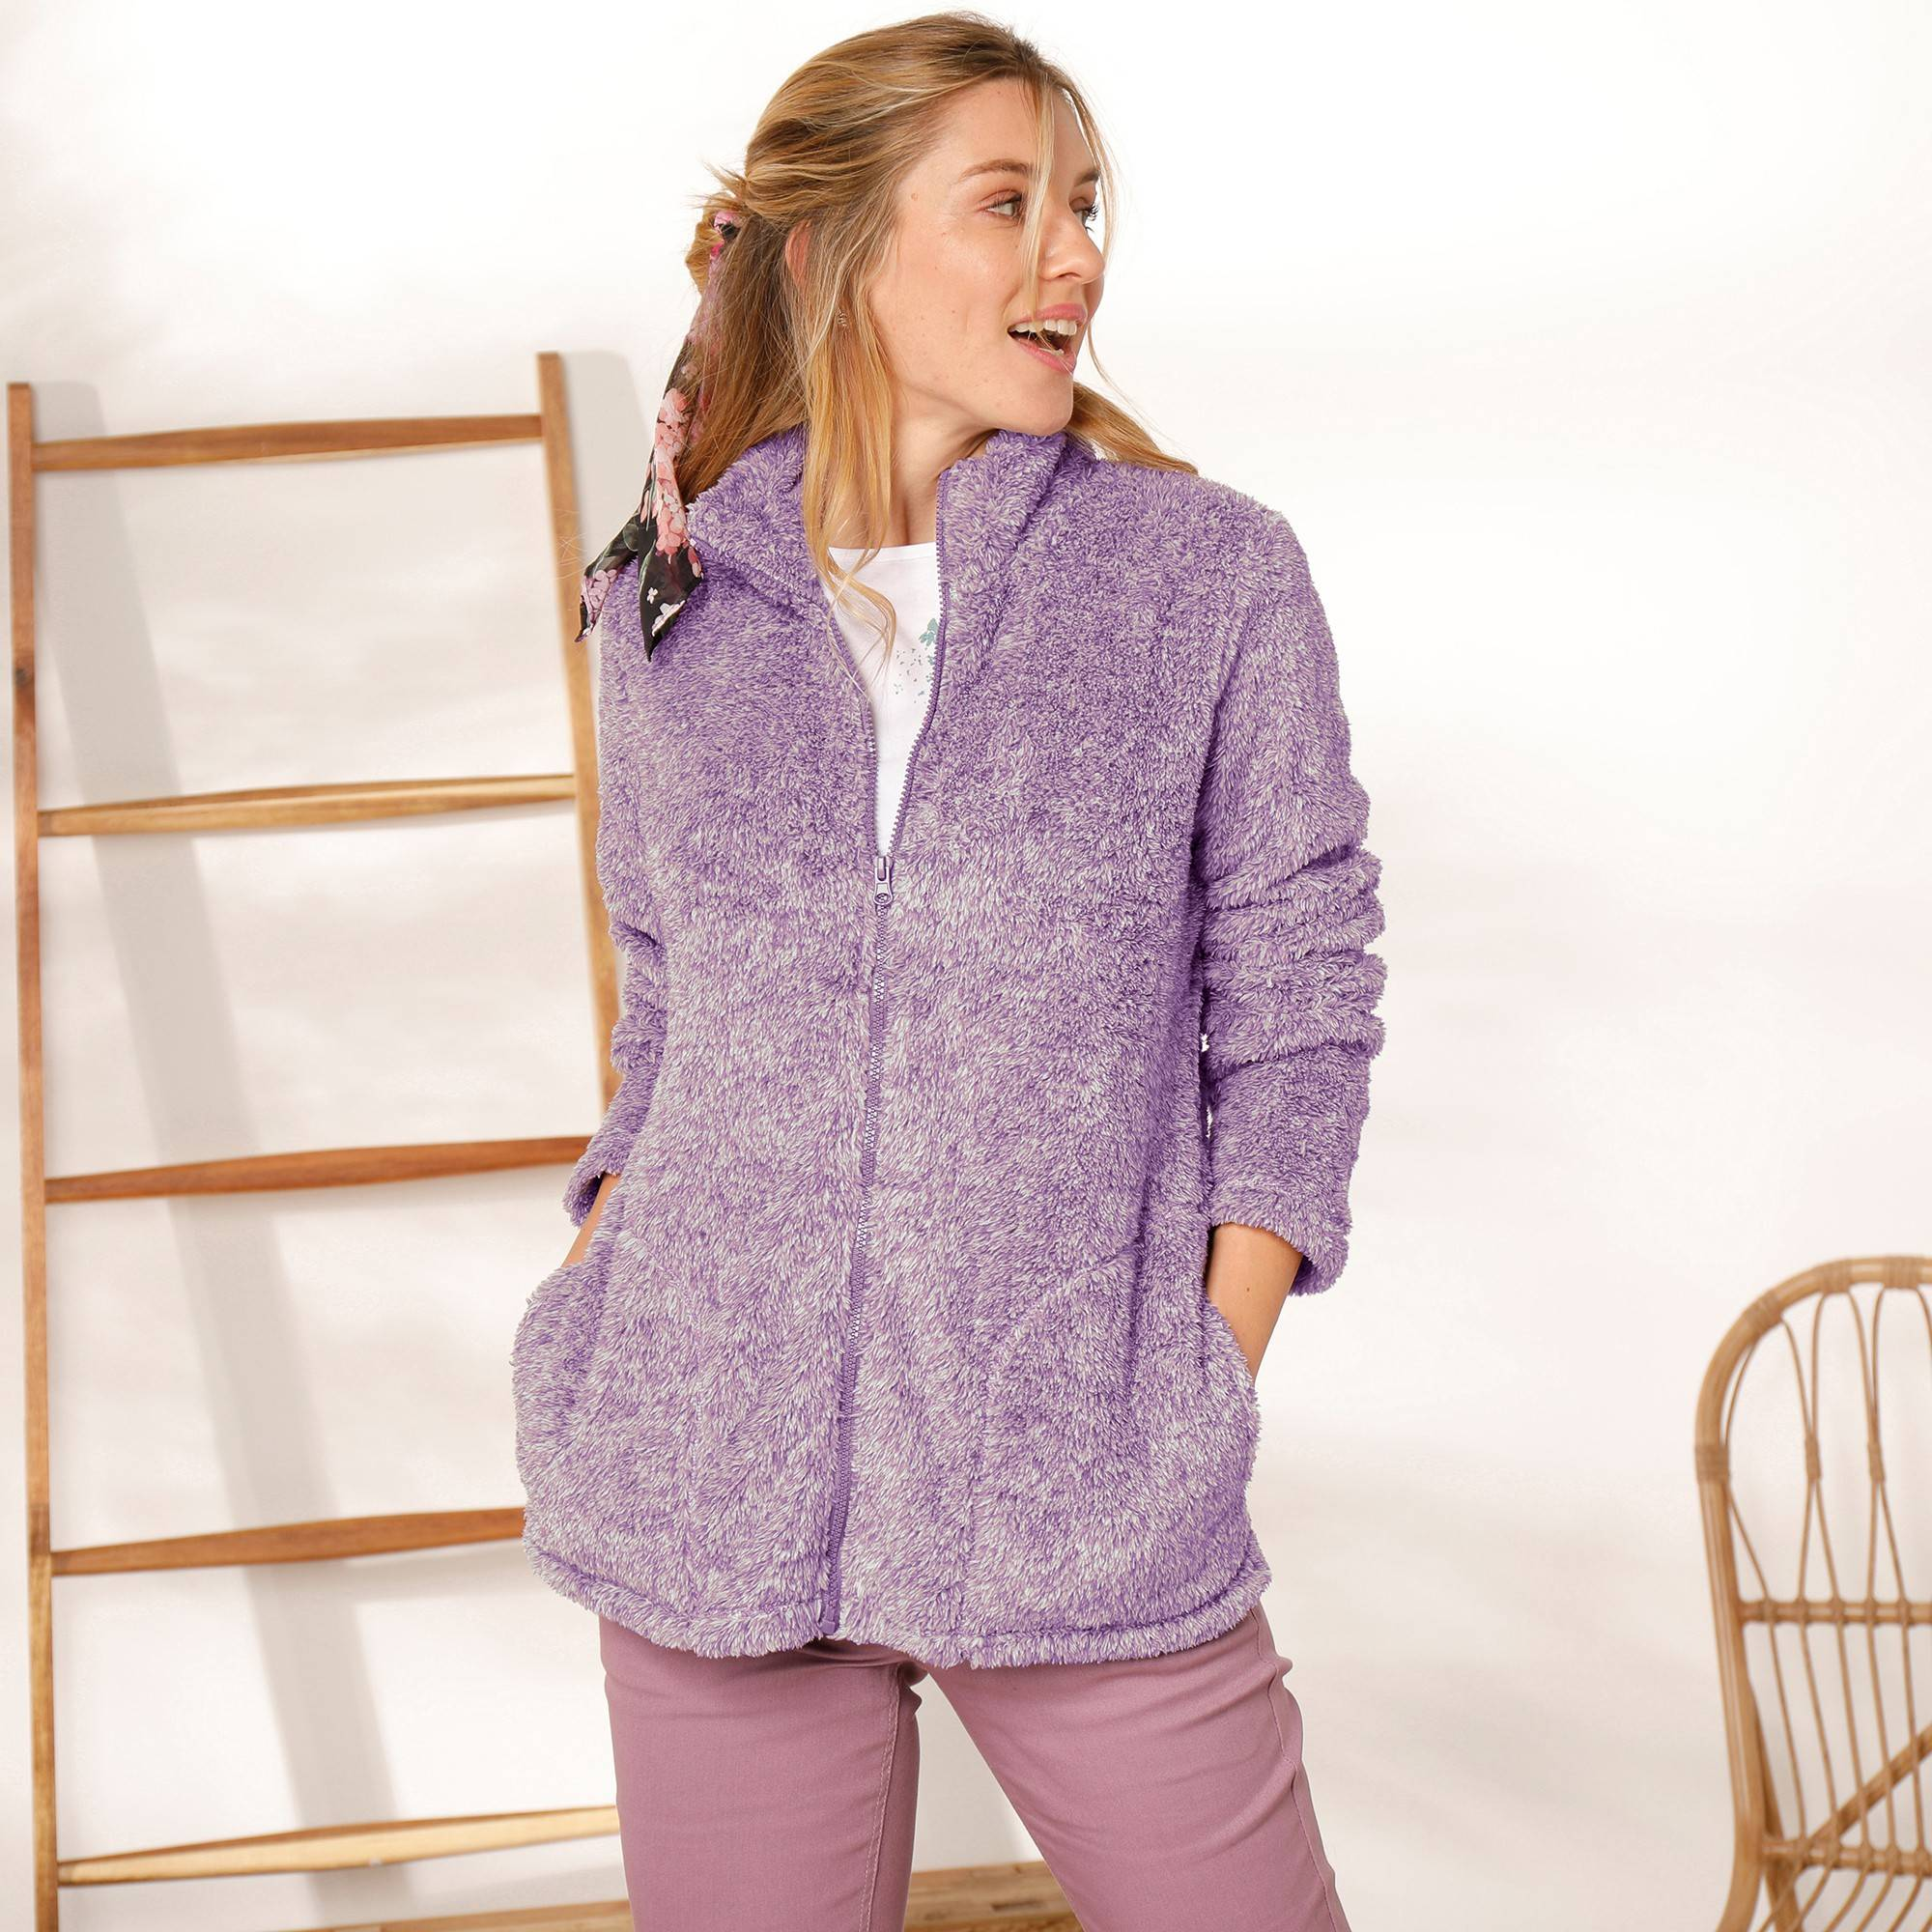 Casual Collection Veste maille peluche - Violet - Taille : 34,36 - Blancheporte